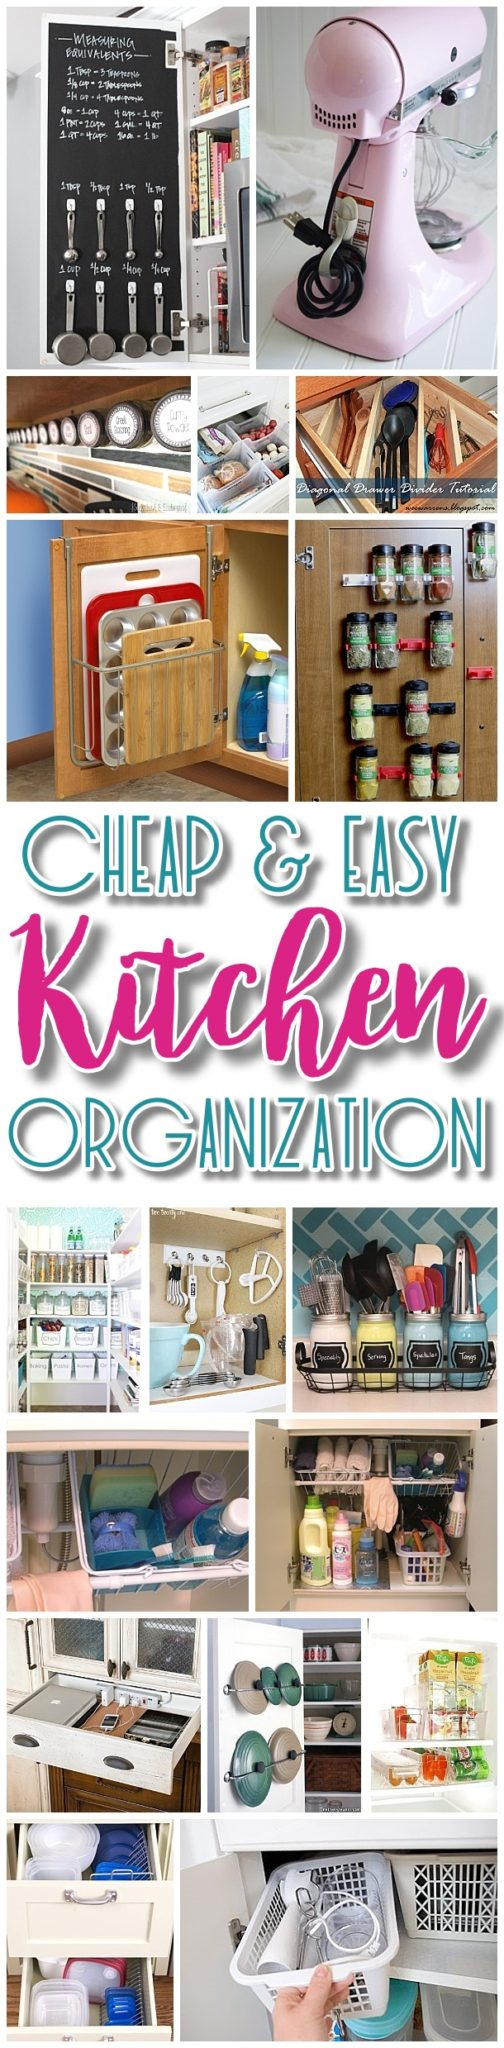 Easy and Budget Friendly Ways to Organize your Kitchen - Hacks, Ideas, Space Saving tips and tricks for Quick Organization in a small or big Kitchen - Dreaming in DIY #kitchenorganization #kitchenhacks #kitchentips #kitchenideas #organizationtips #organization #organizationideas